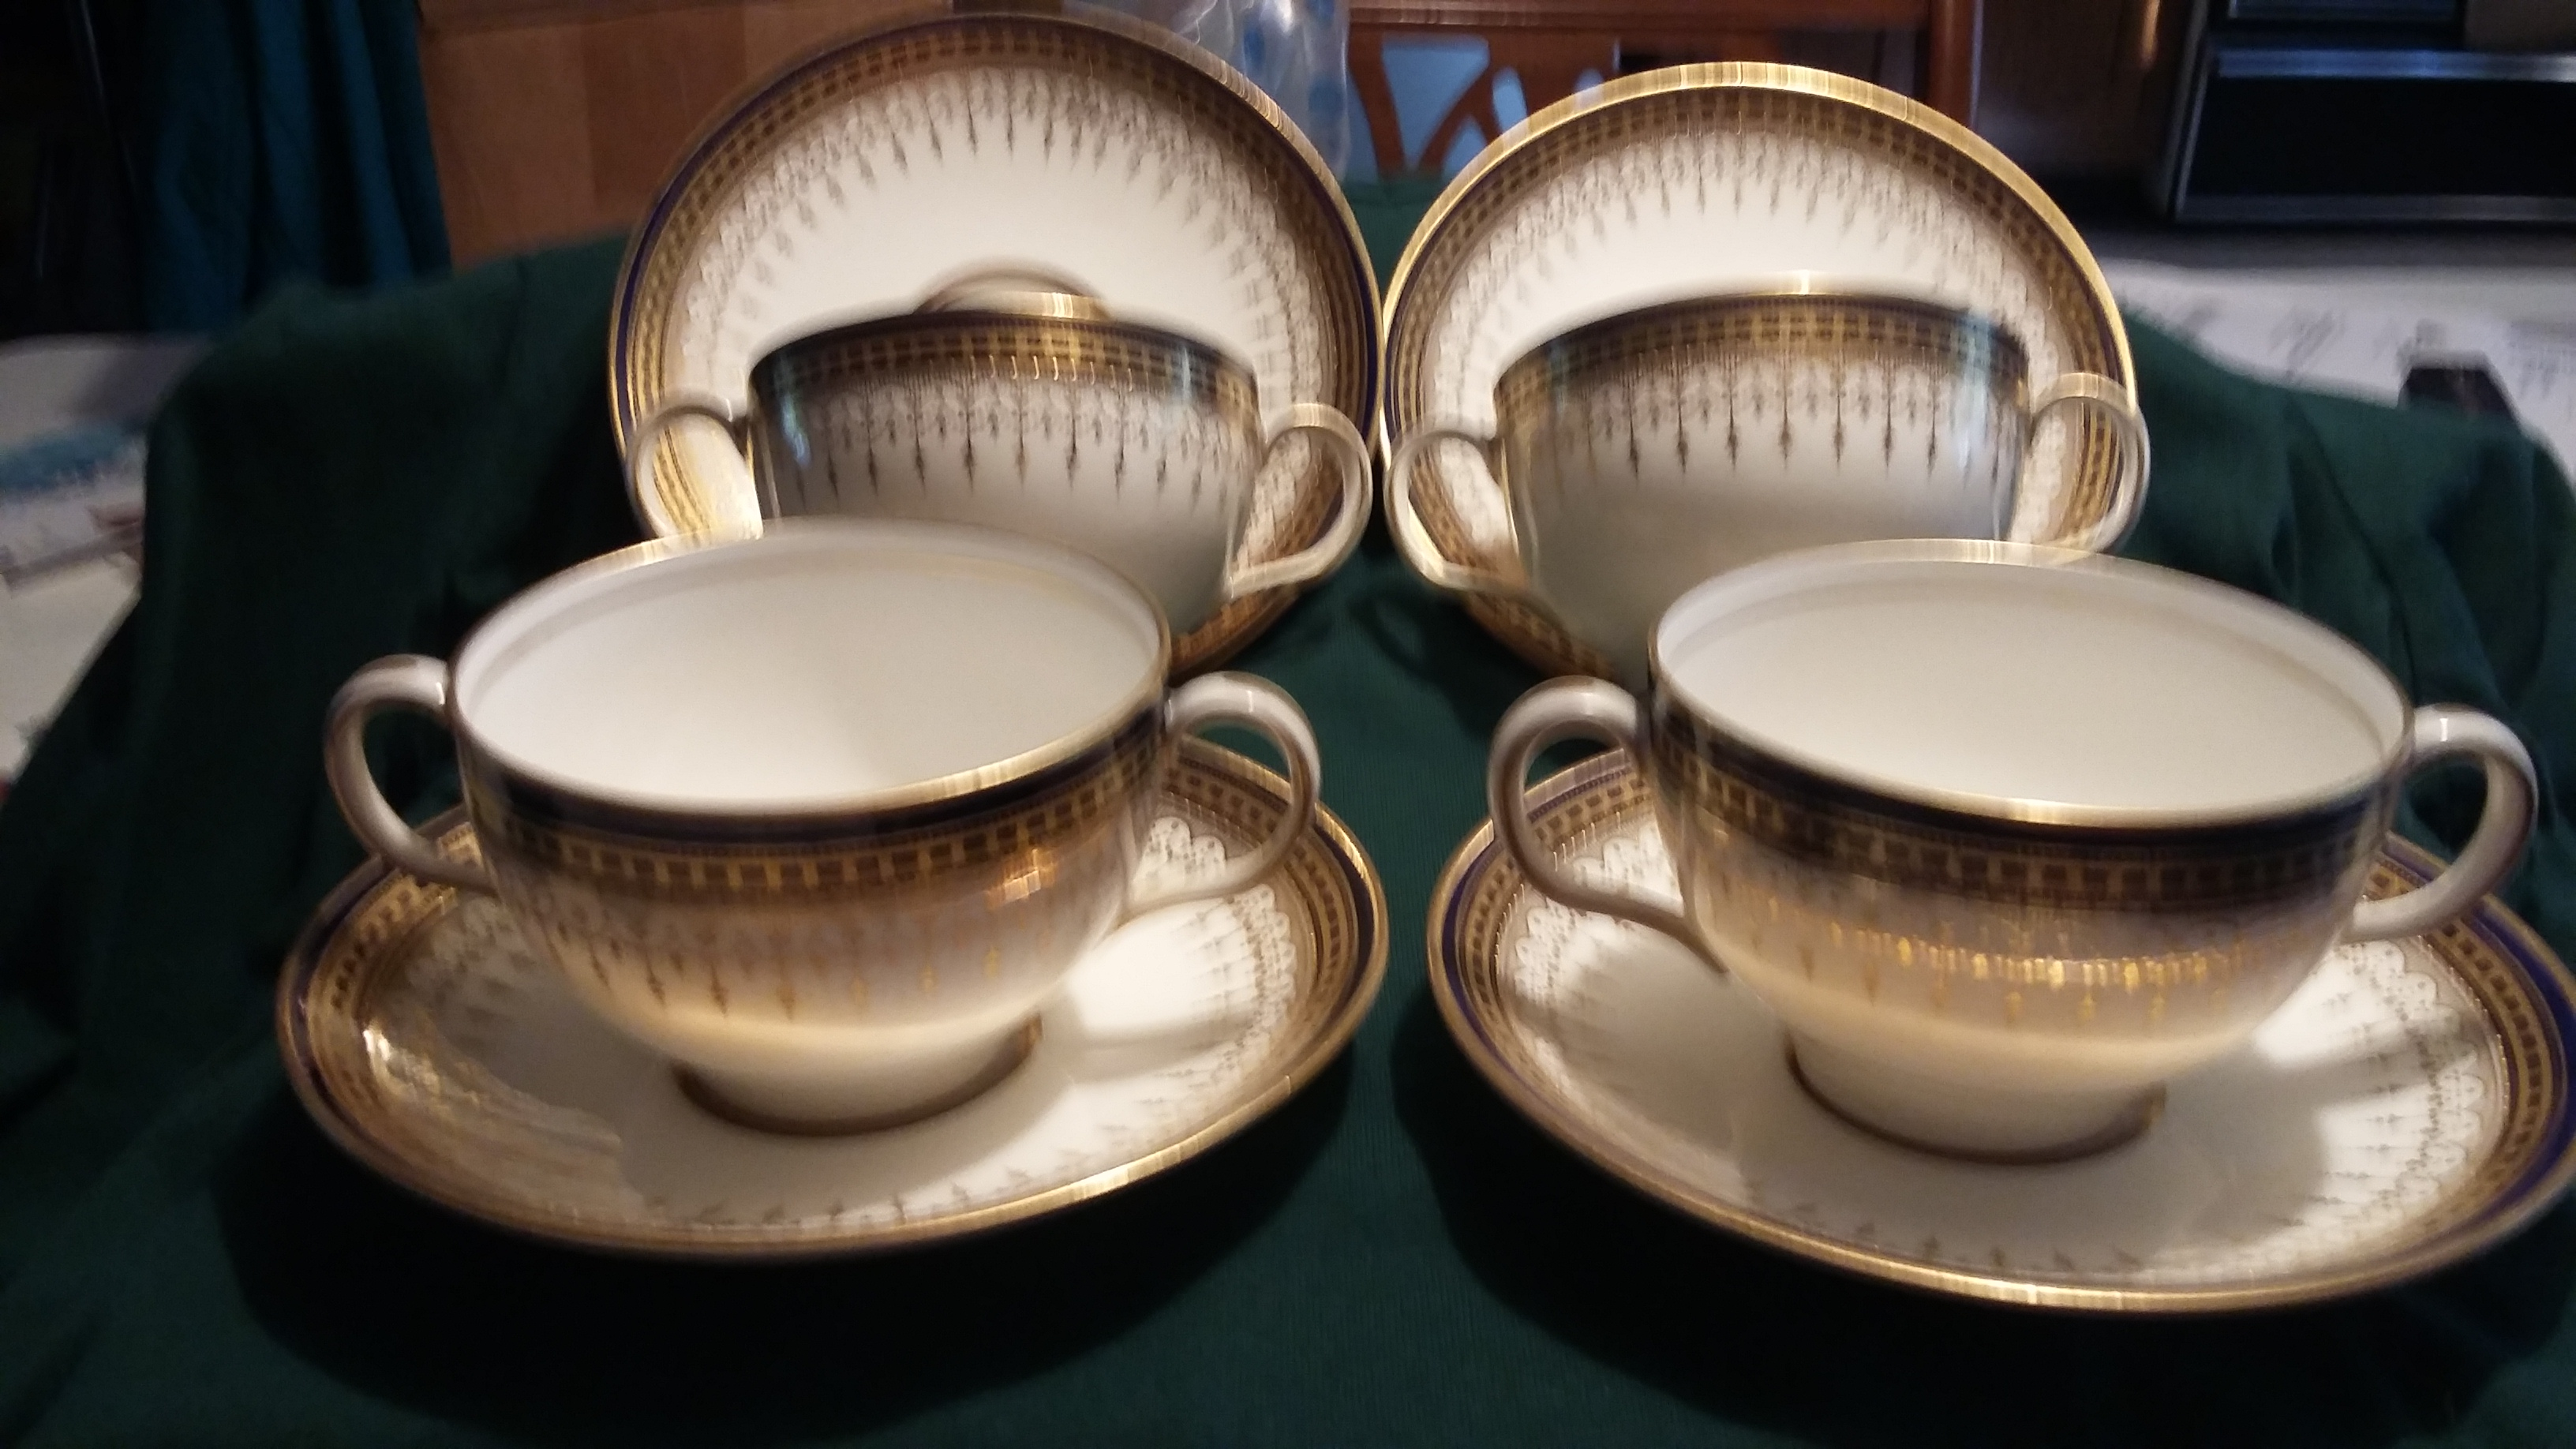 I have a set of six double handled cups and saucers by Royal Doulton